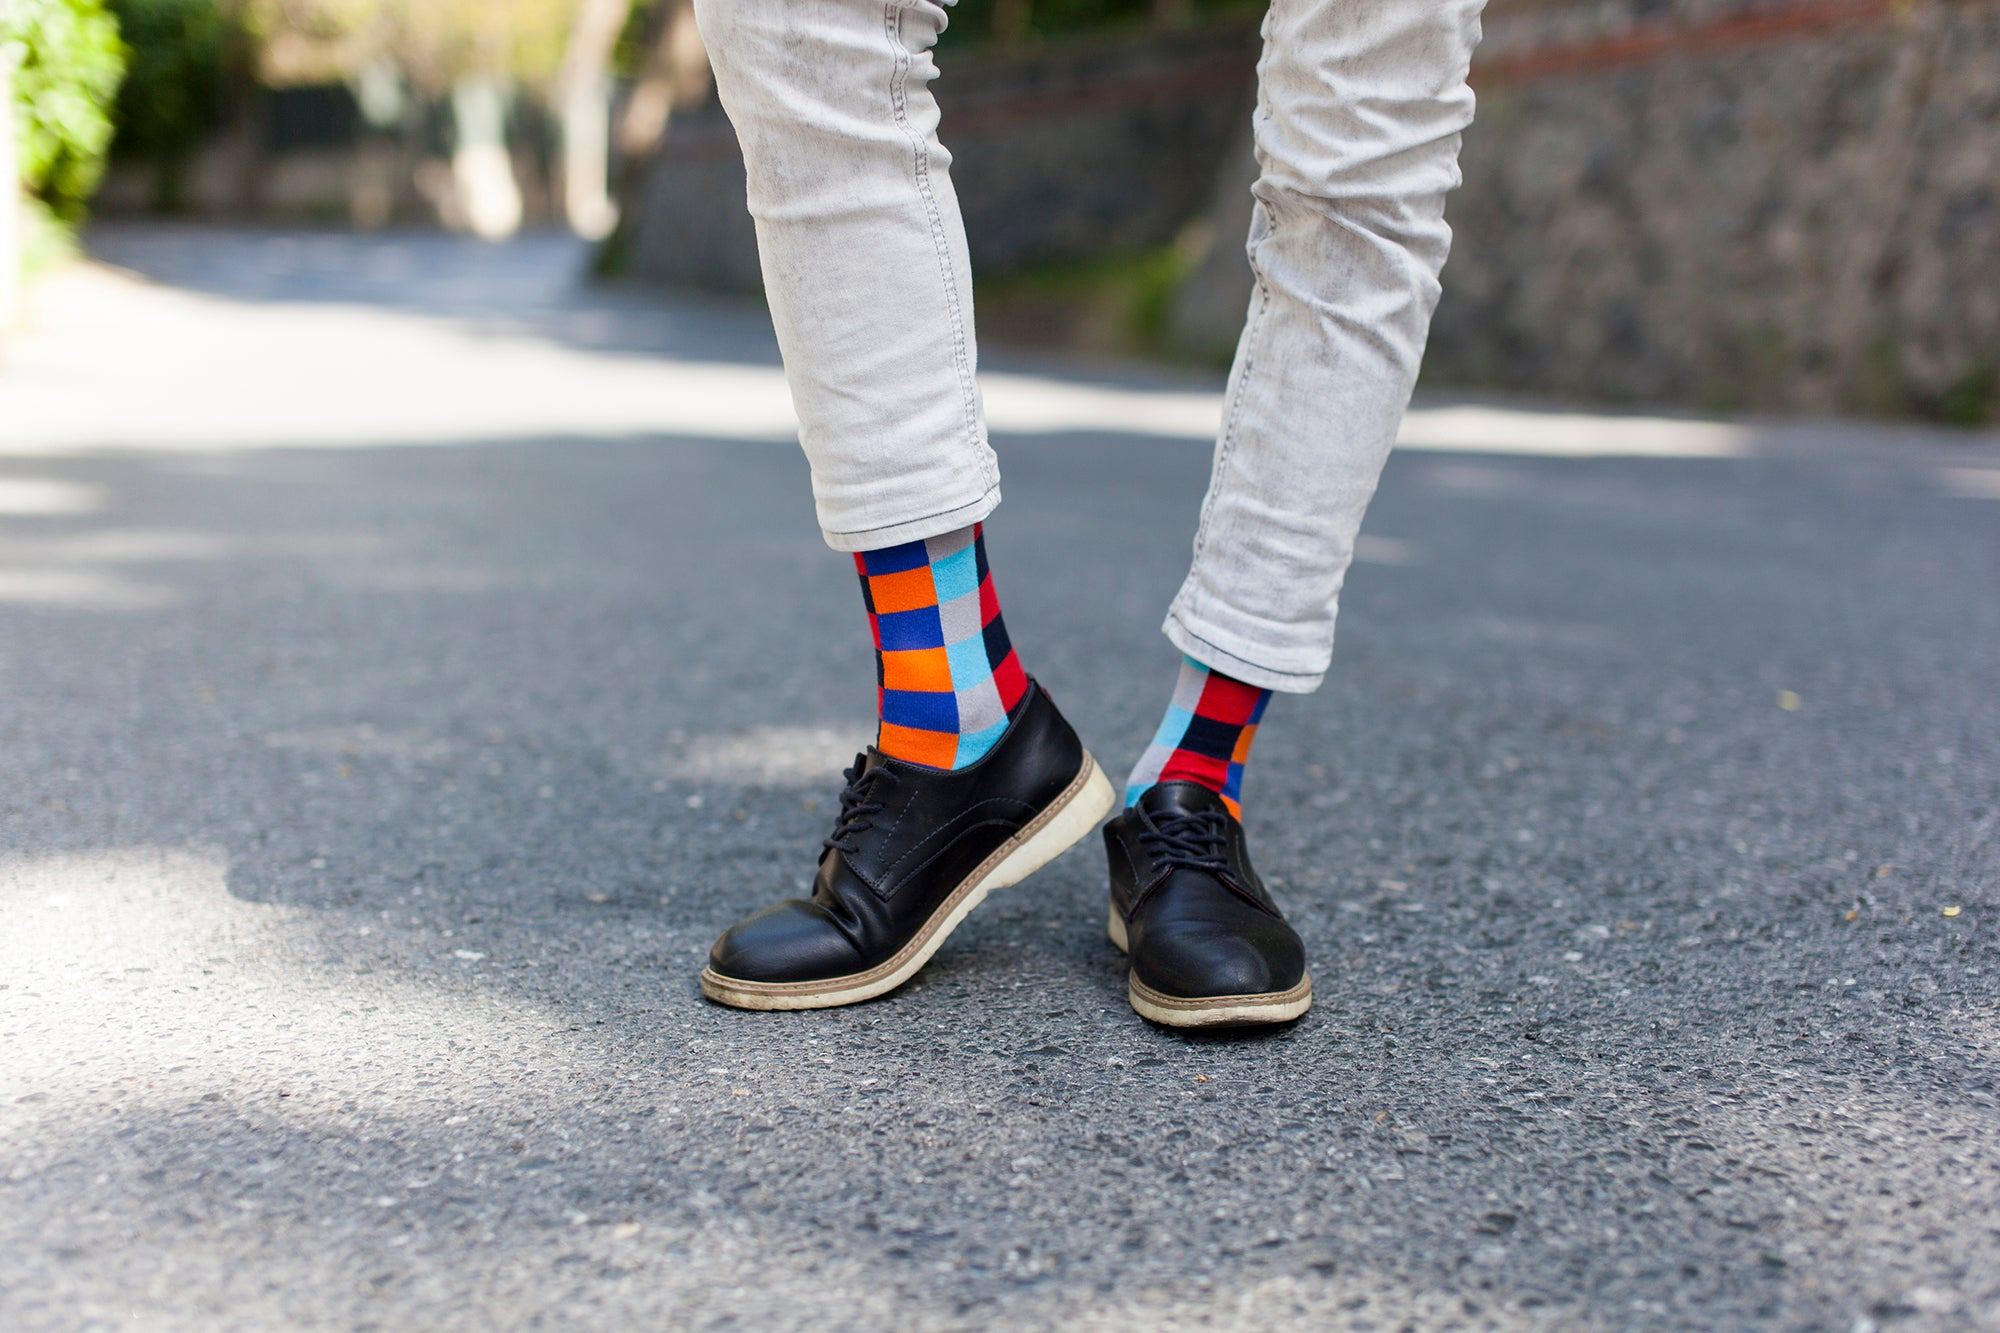 Men's Tomato Square Socks